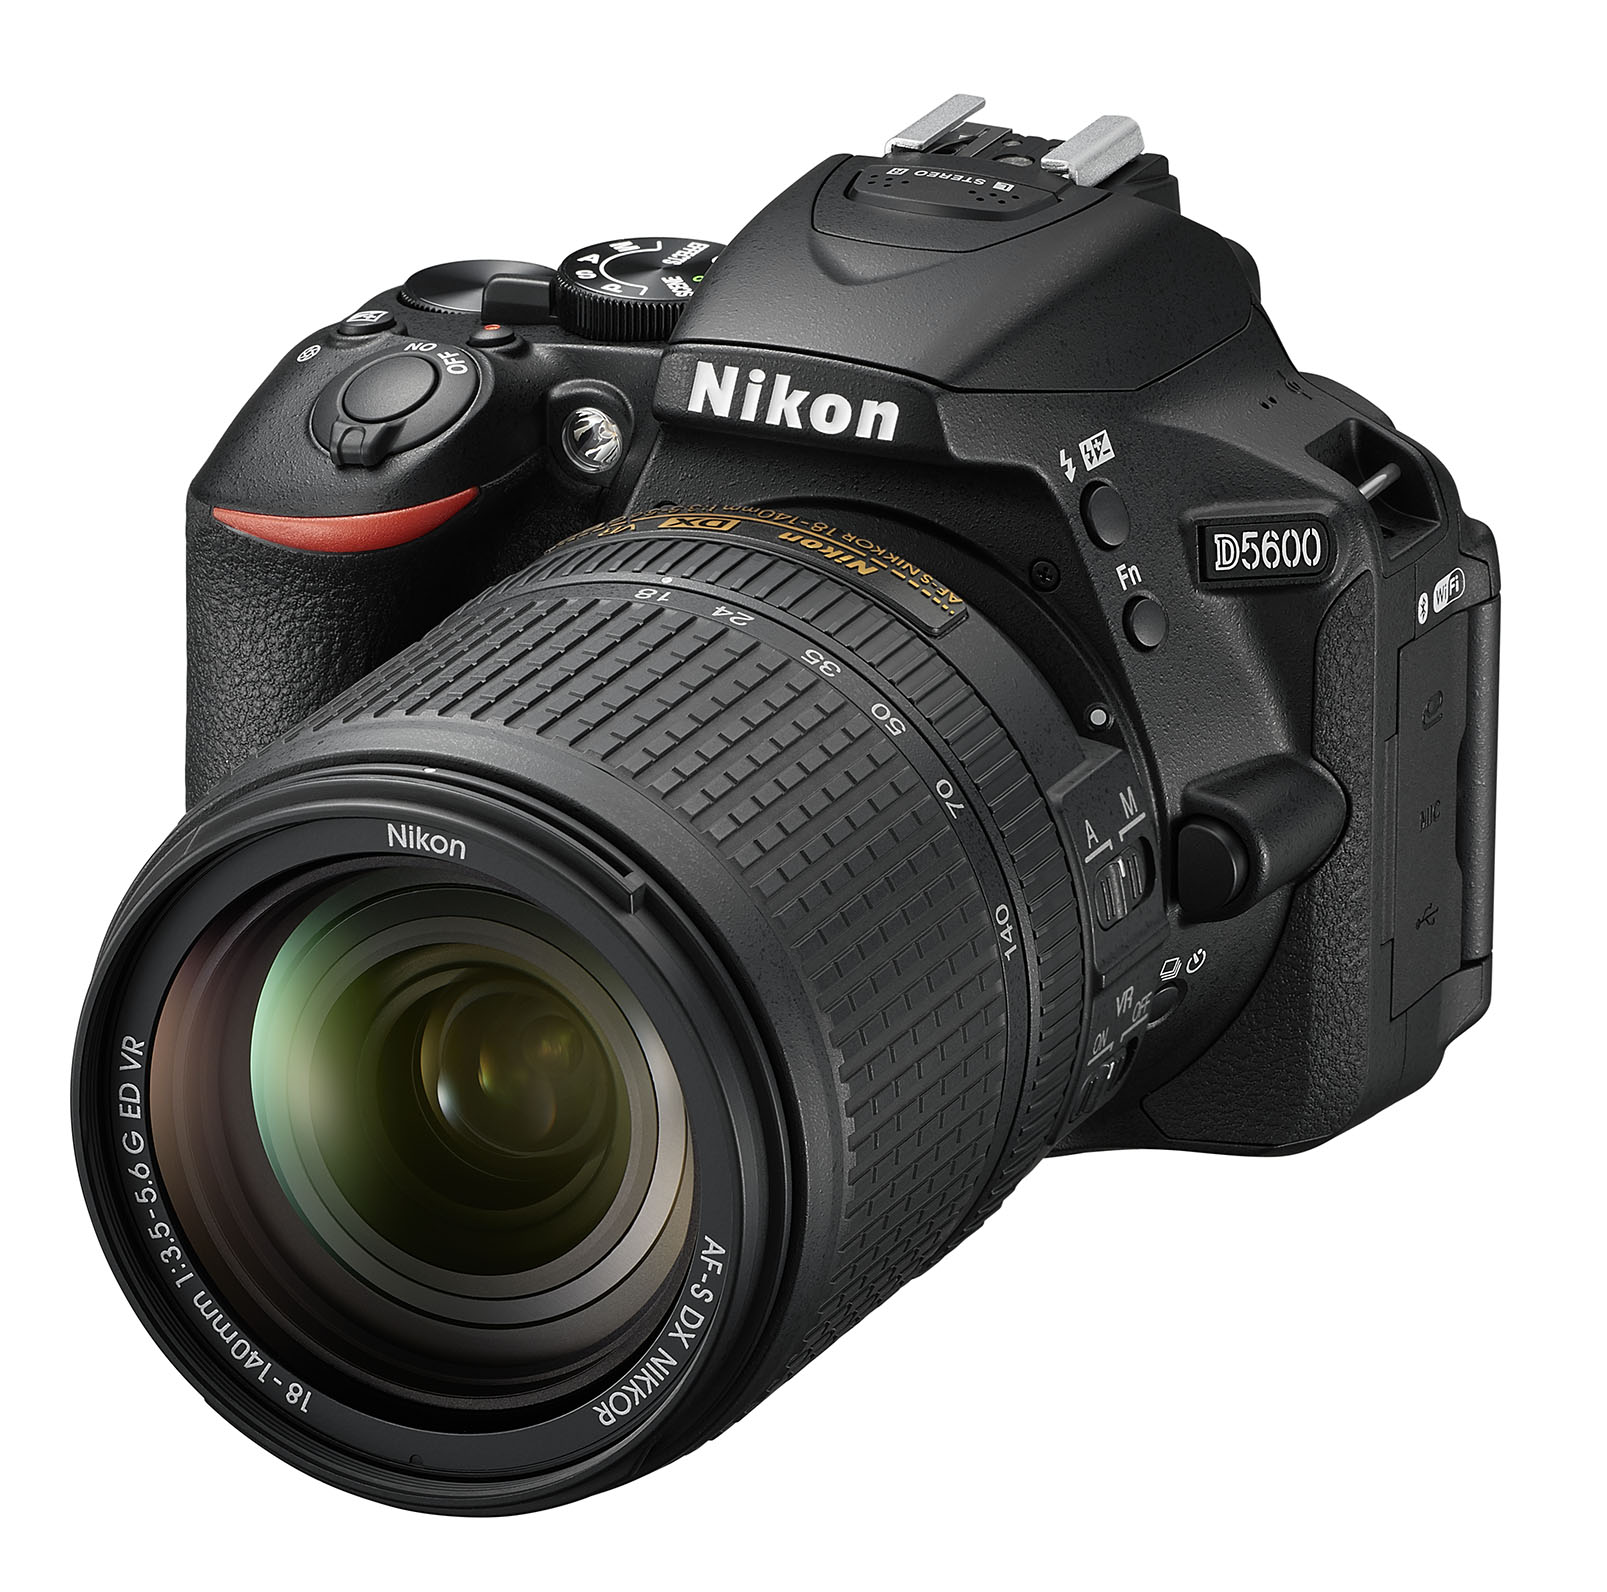 Nikon launches D5600 DSLR camera for photography hobbysists